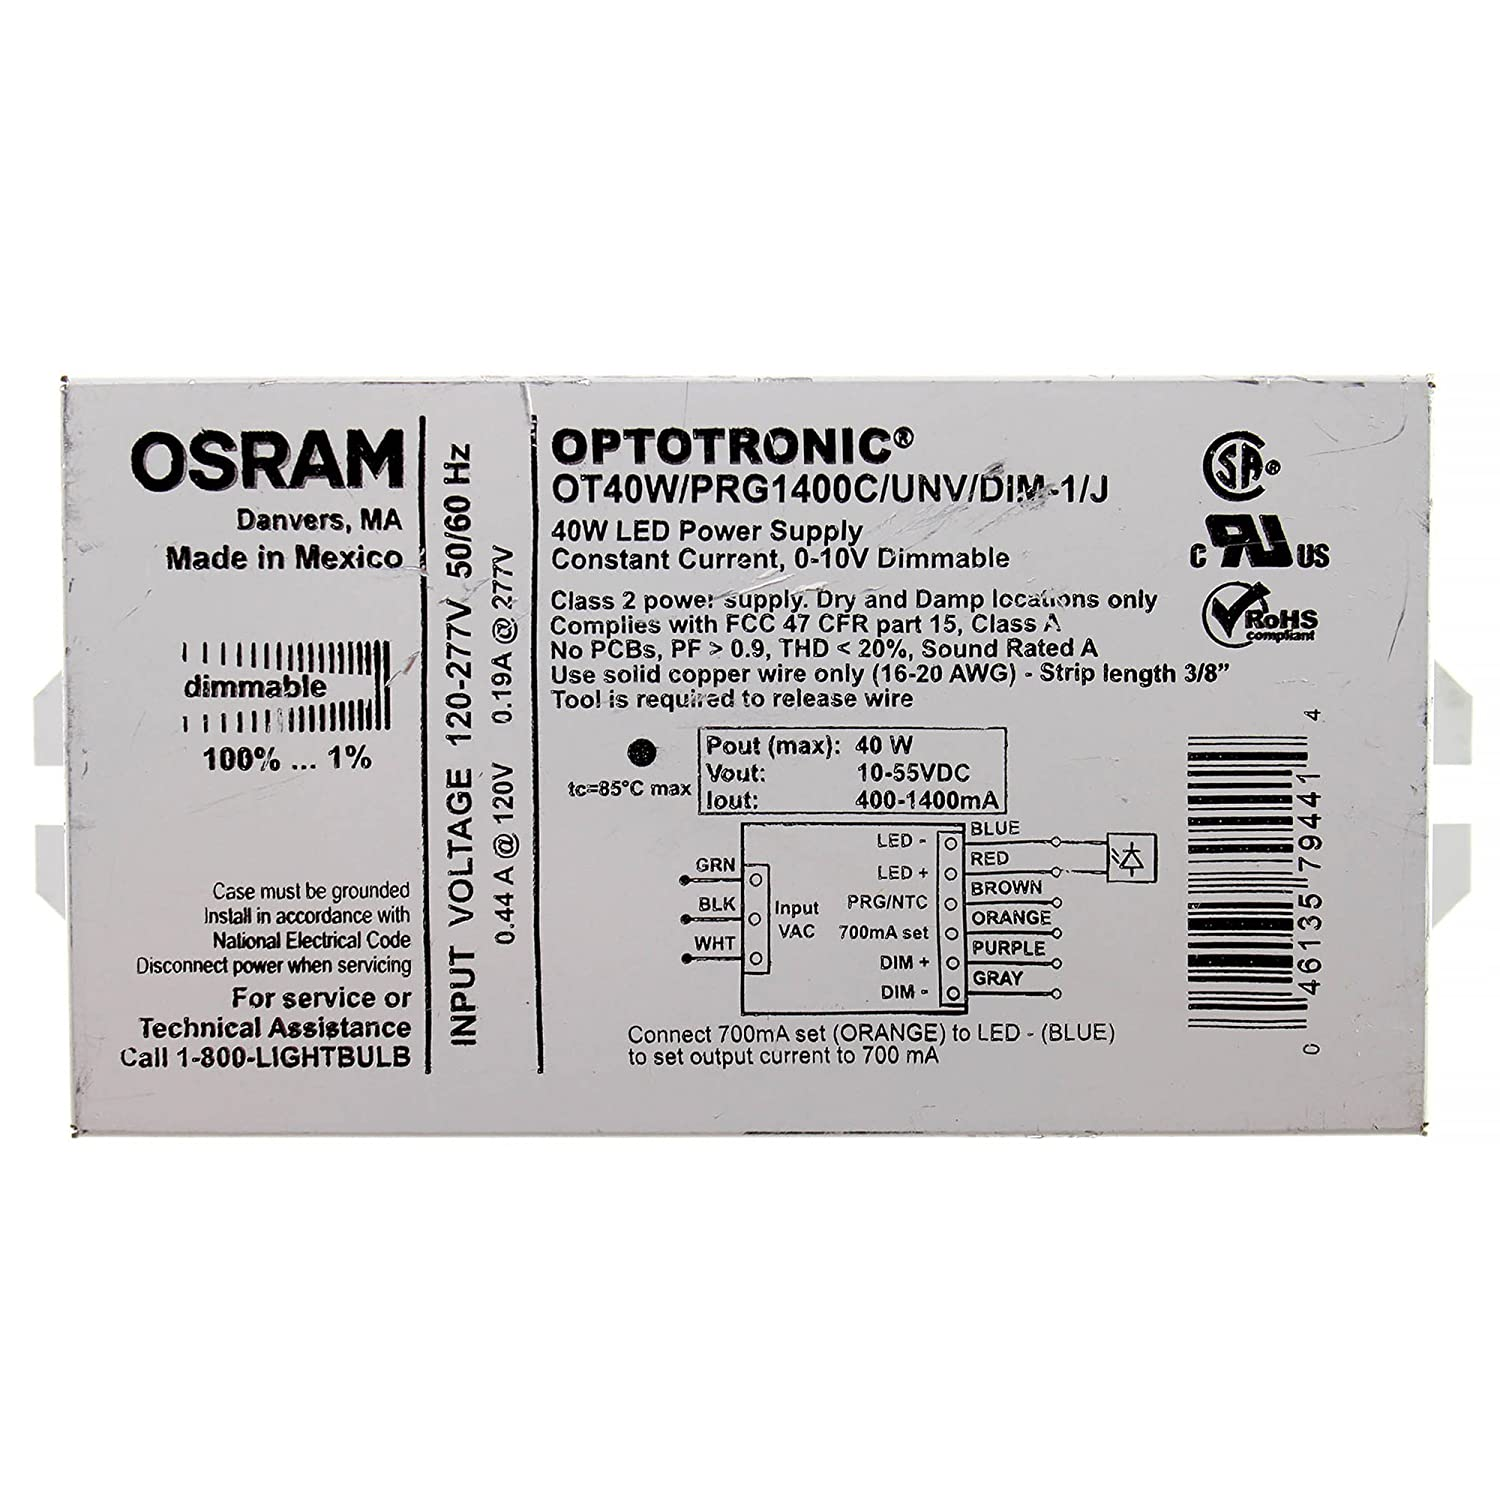 Osram OT40W/PRG1400C/UNV/DIM-1/J Optotronic 40W Programmable Led Power Supply